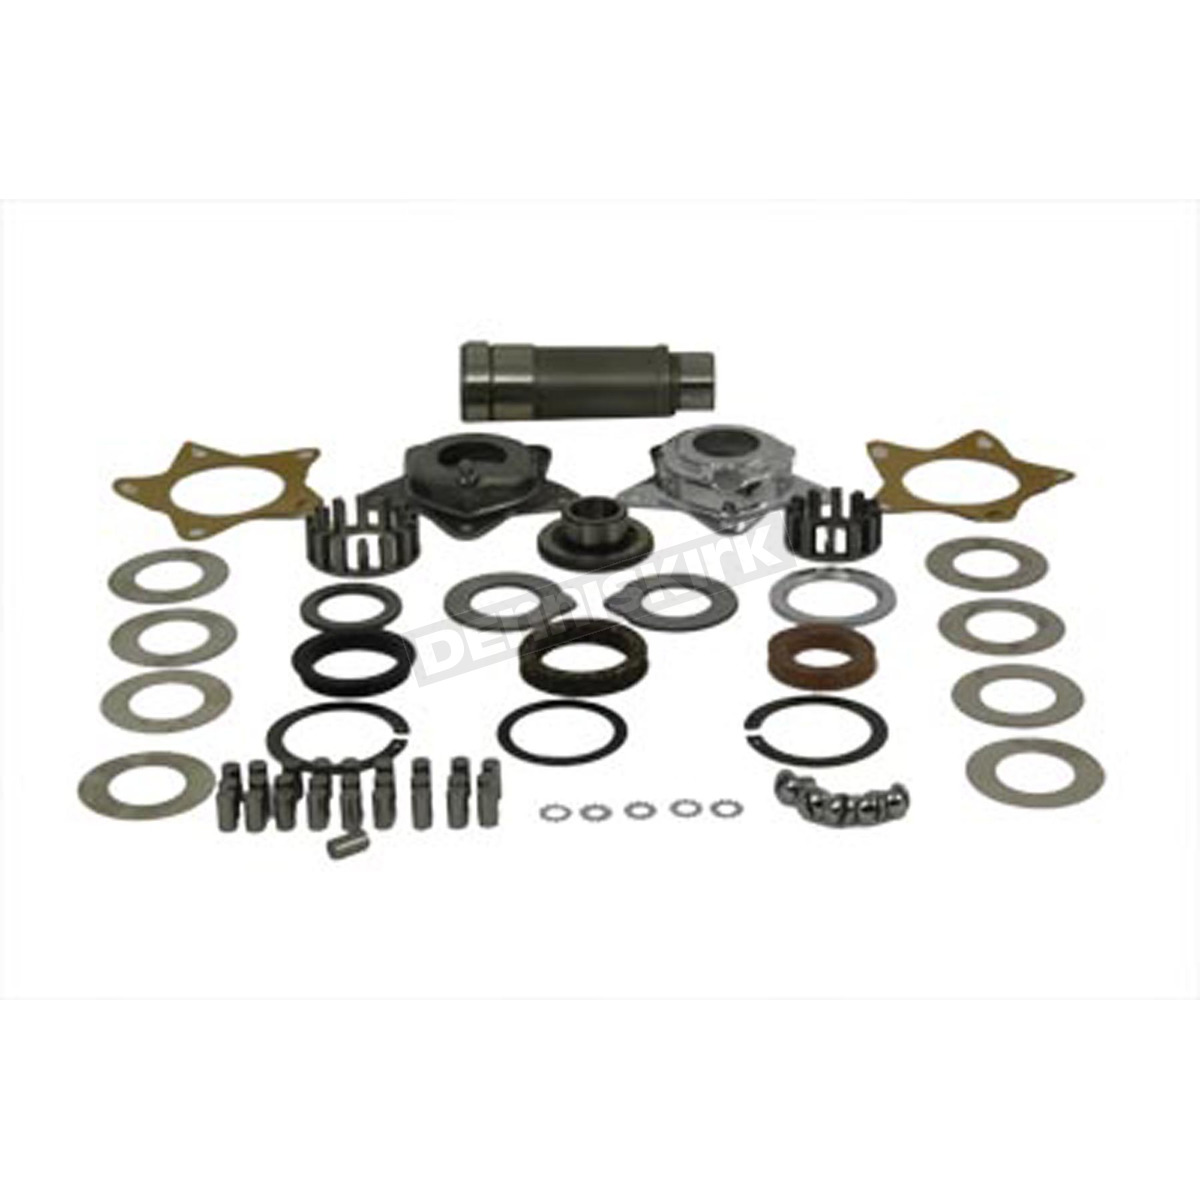 V Twin Manufacturing Star Wheel Hub Rebuild Kit